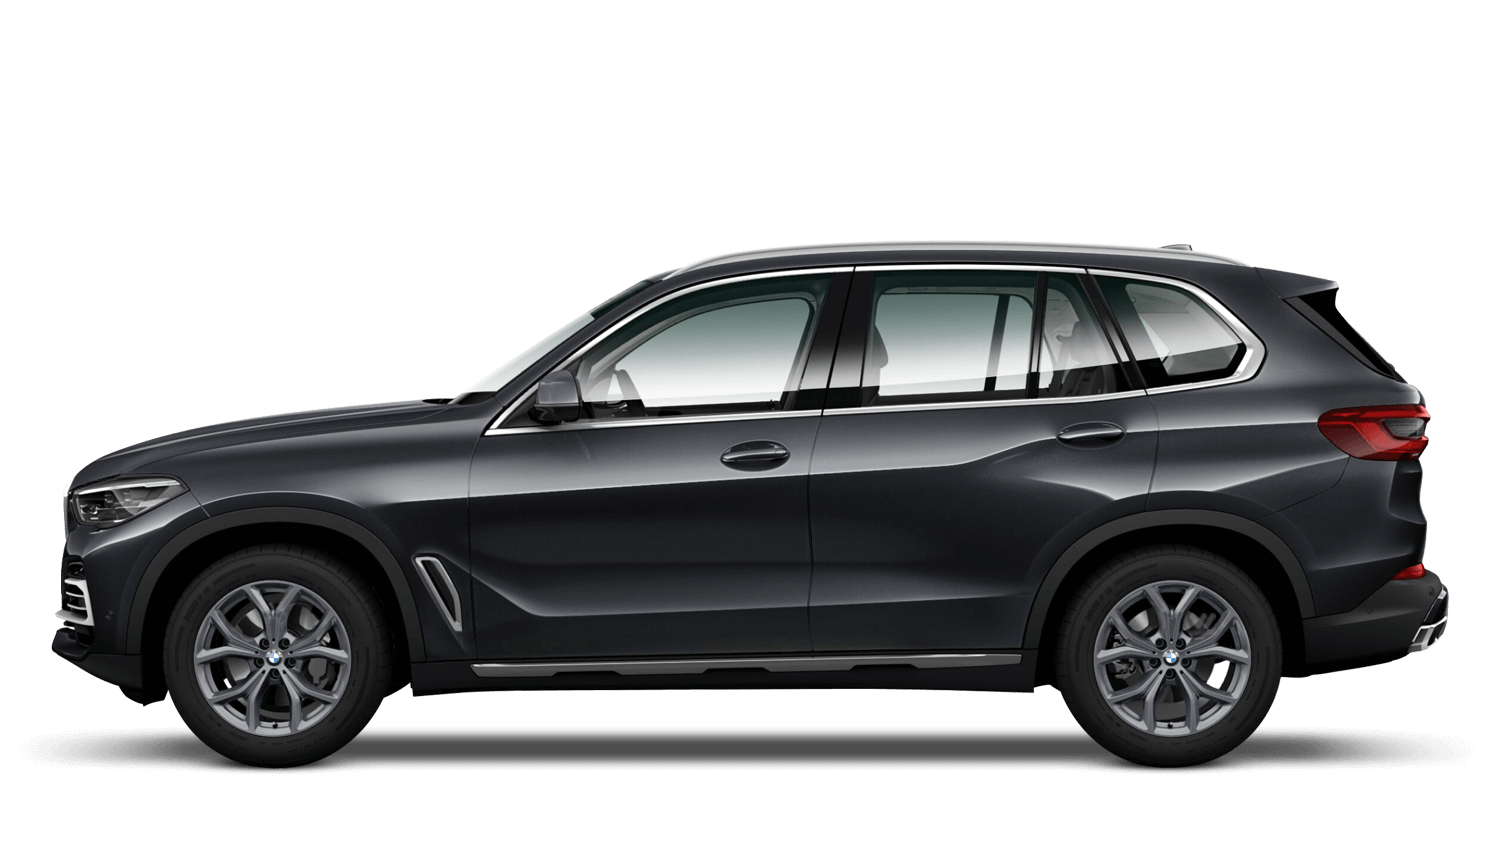 bmw x5 xline finance available barons chandlers bmw. Black Bedroom Furniture Sets. Home Design Ideas